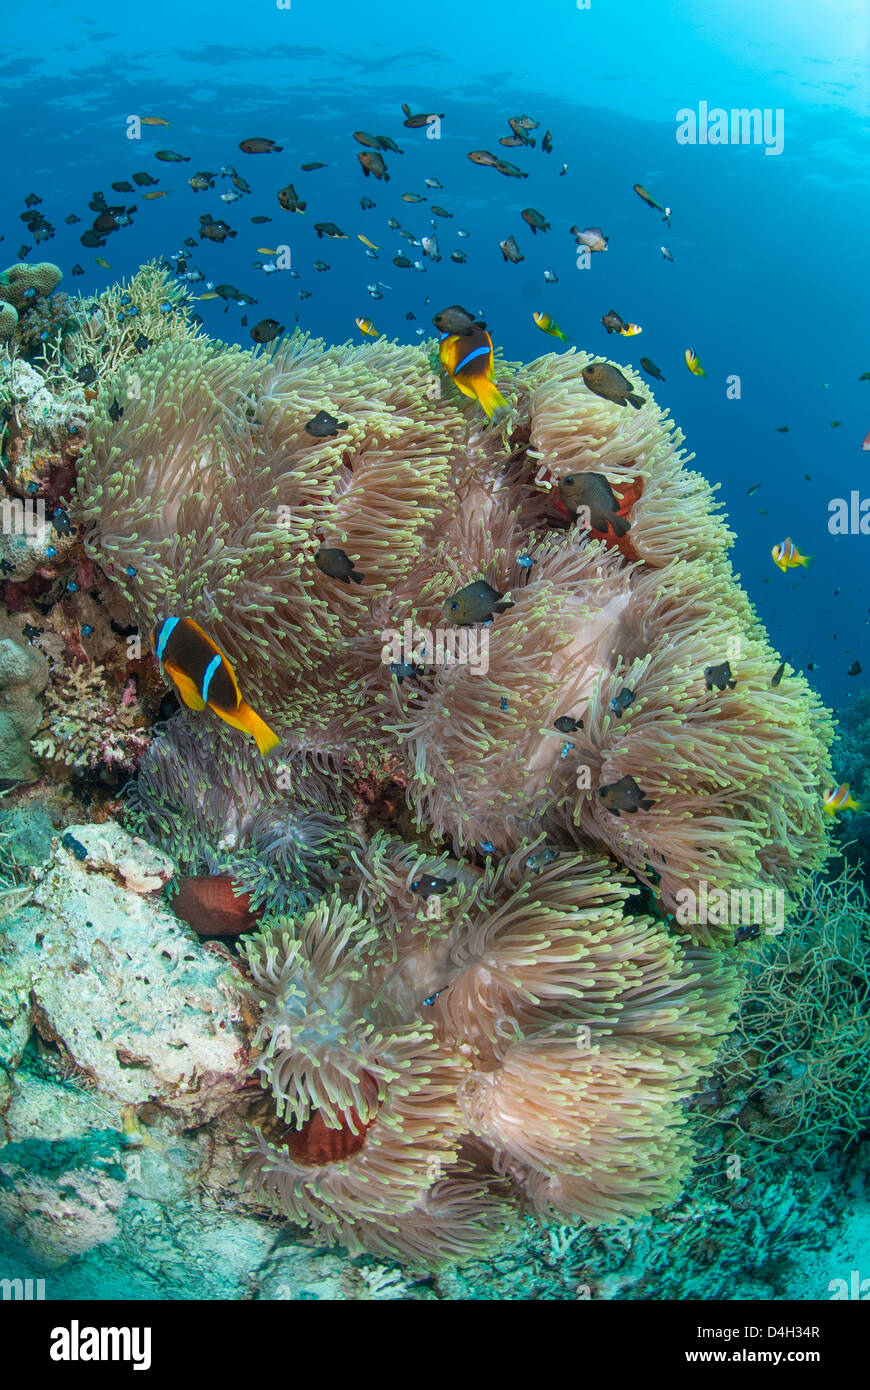 Colony of magnificent anemone, Colony, Ras Mohammed National Park, off Sharm el Sheikh, Sinai, Egypt, Red Sea, Egypt - Stock Image